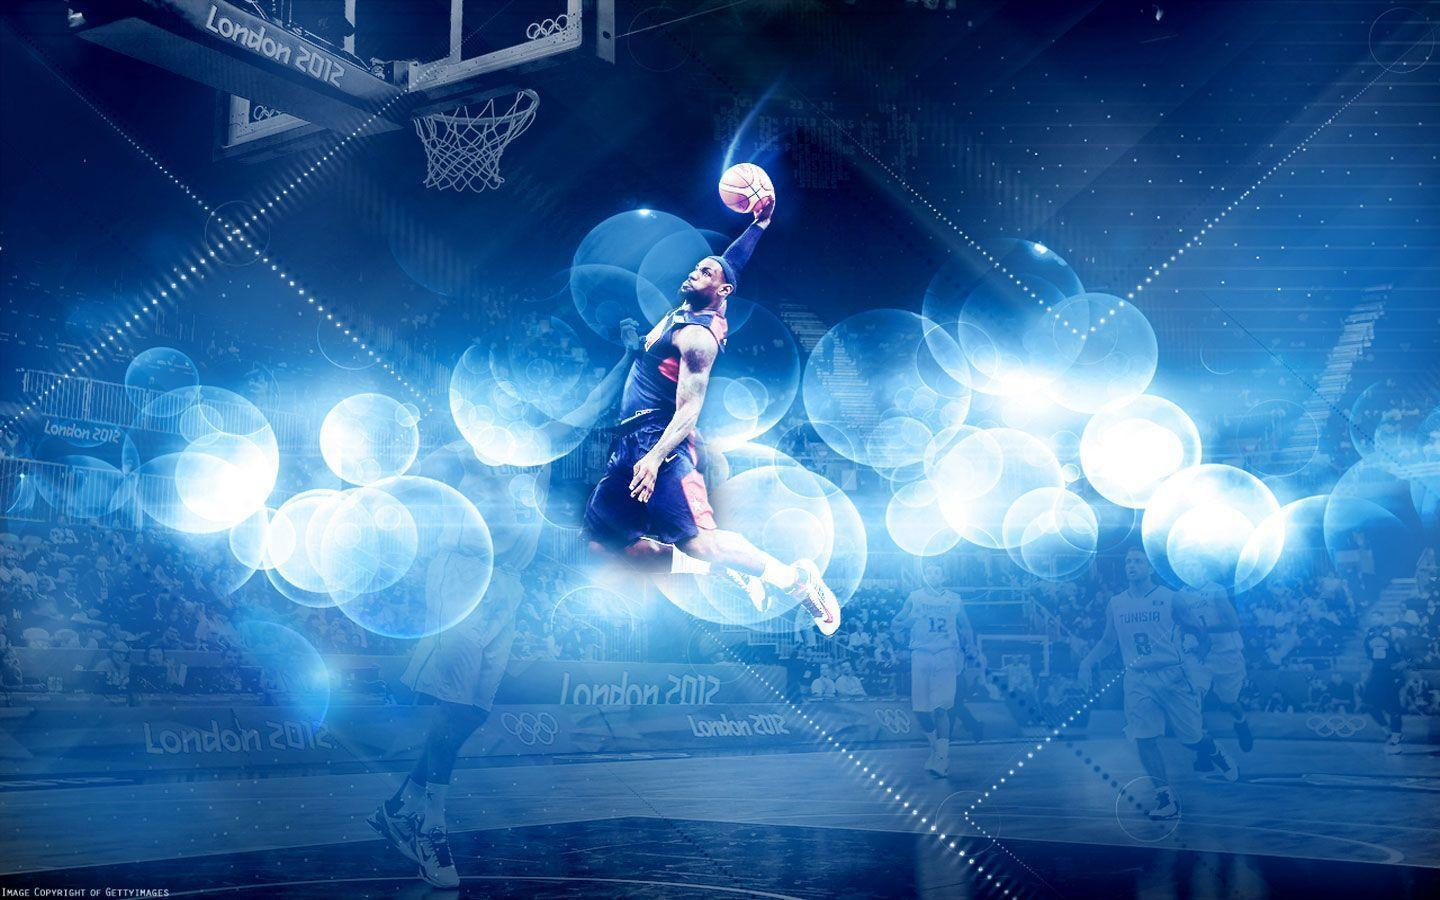 LeBron James 2012 Olympics Dunk vs Tunisia Wallpapers